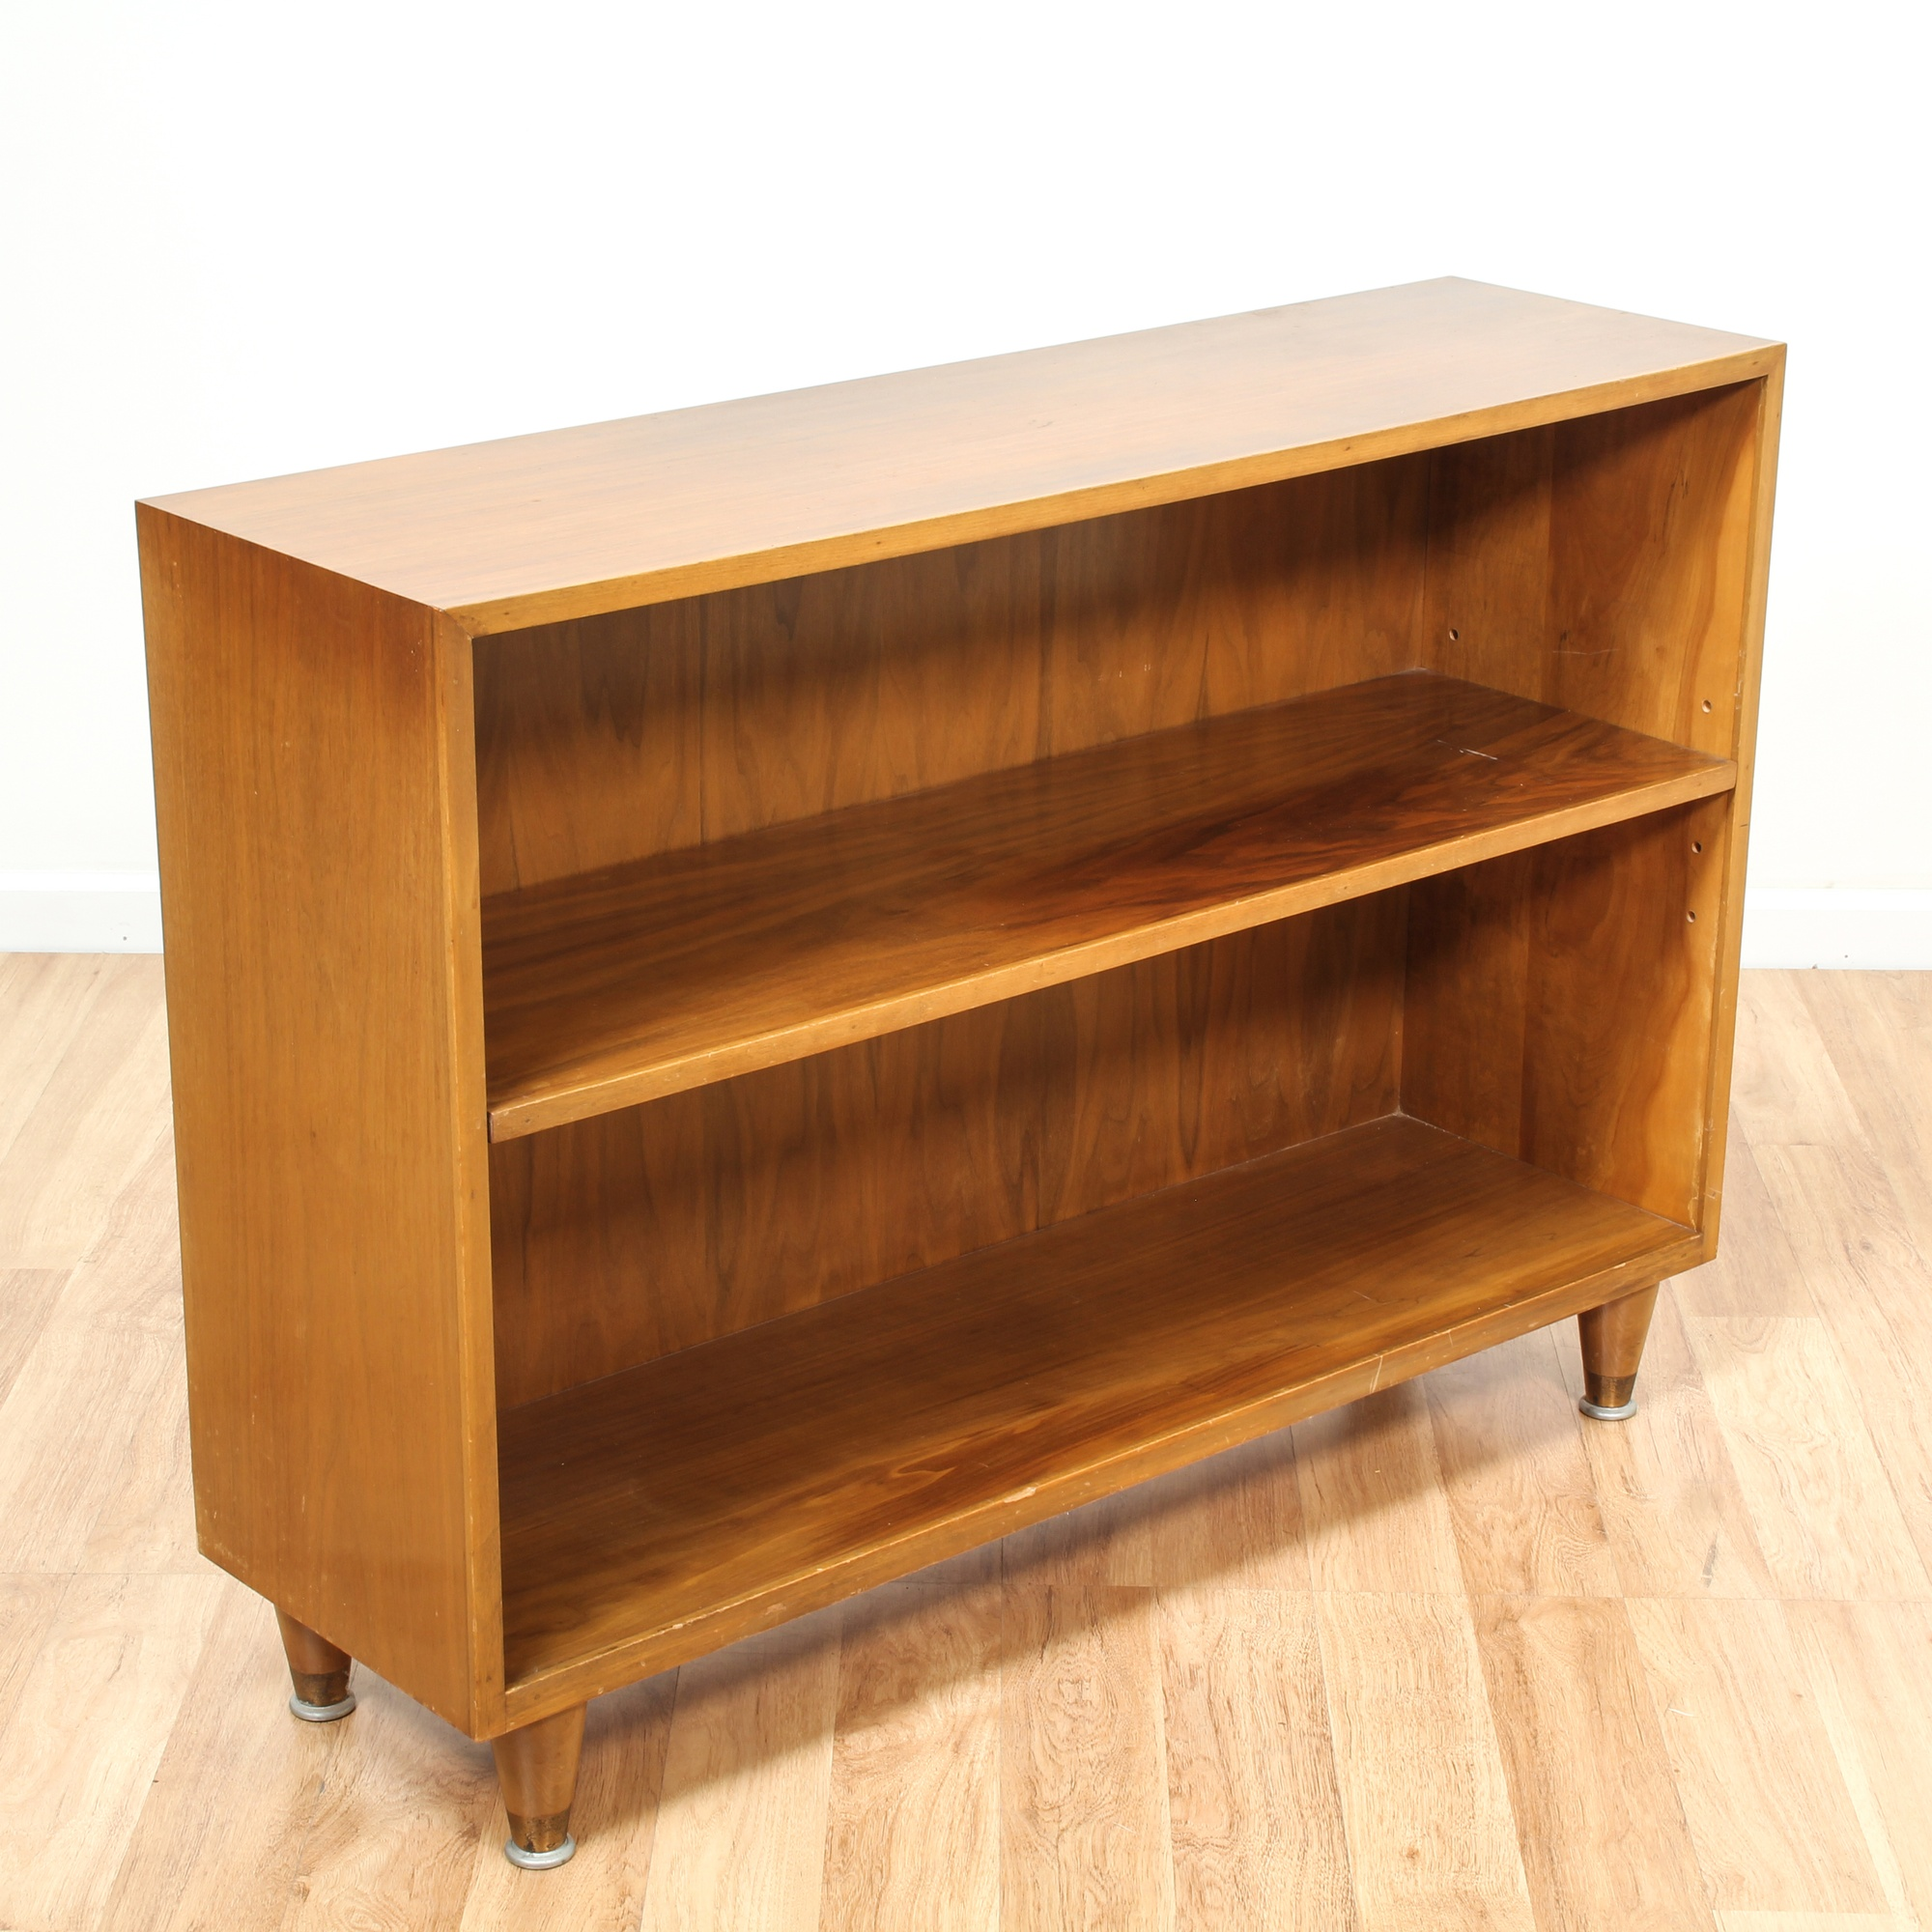 Image of: Mid Century Modern Low Bookcase Loveseat Online Auctions Los Angeles